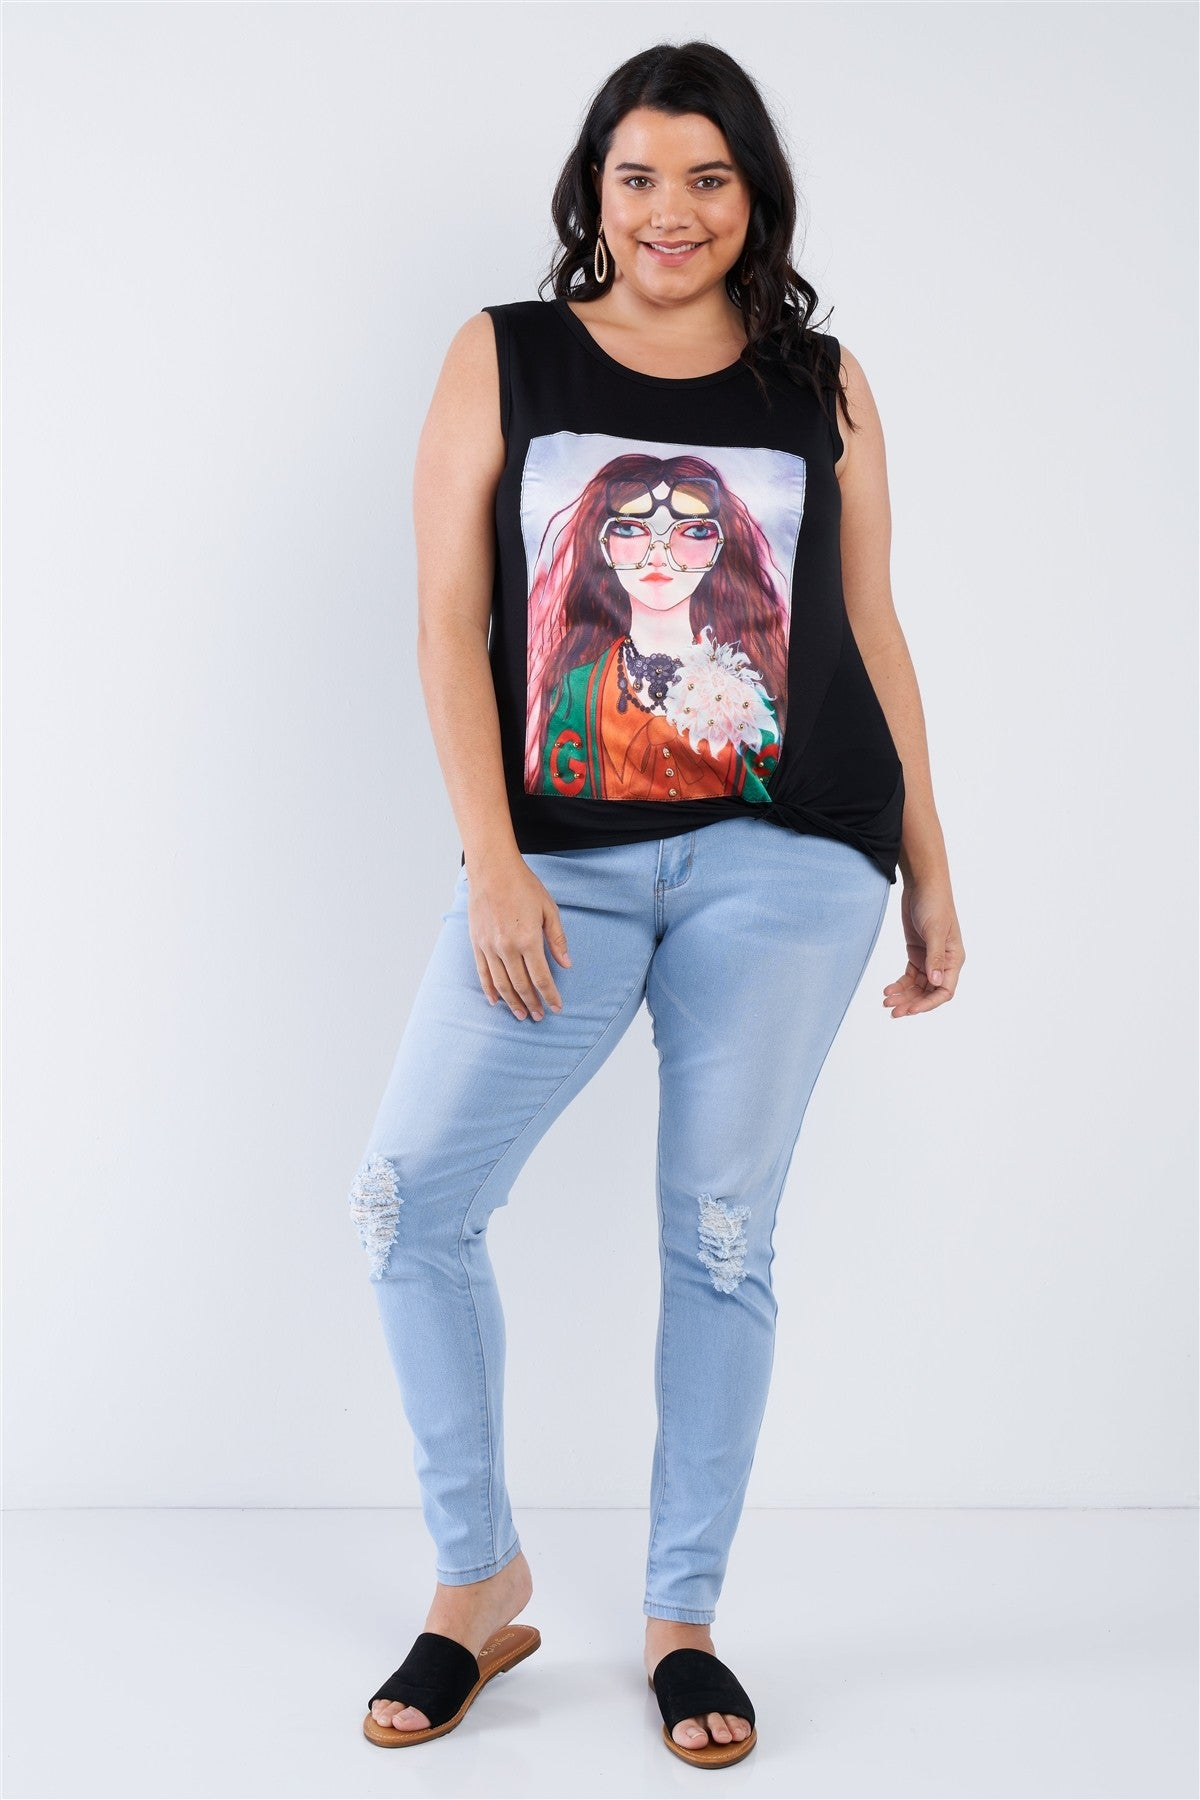 slaythedaybydcole,Plus Size Shady Girl Graphic Top,Slay The Day By D Cole,